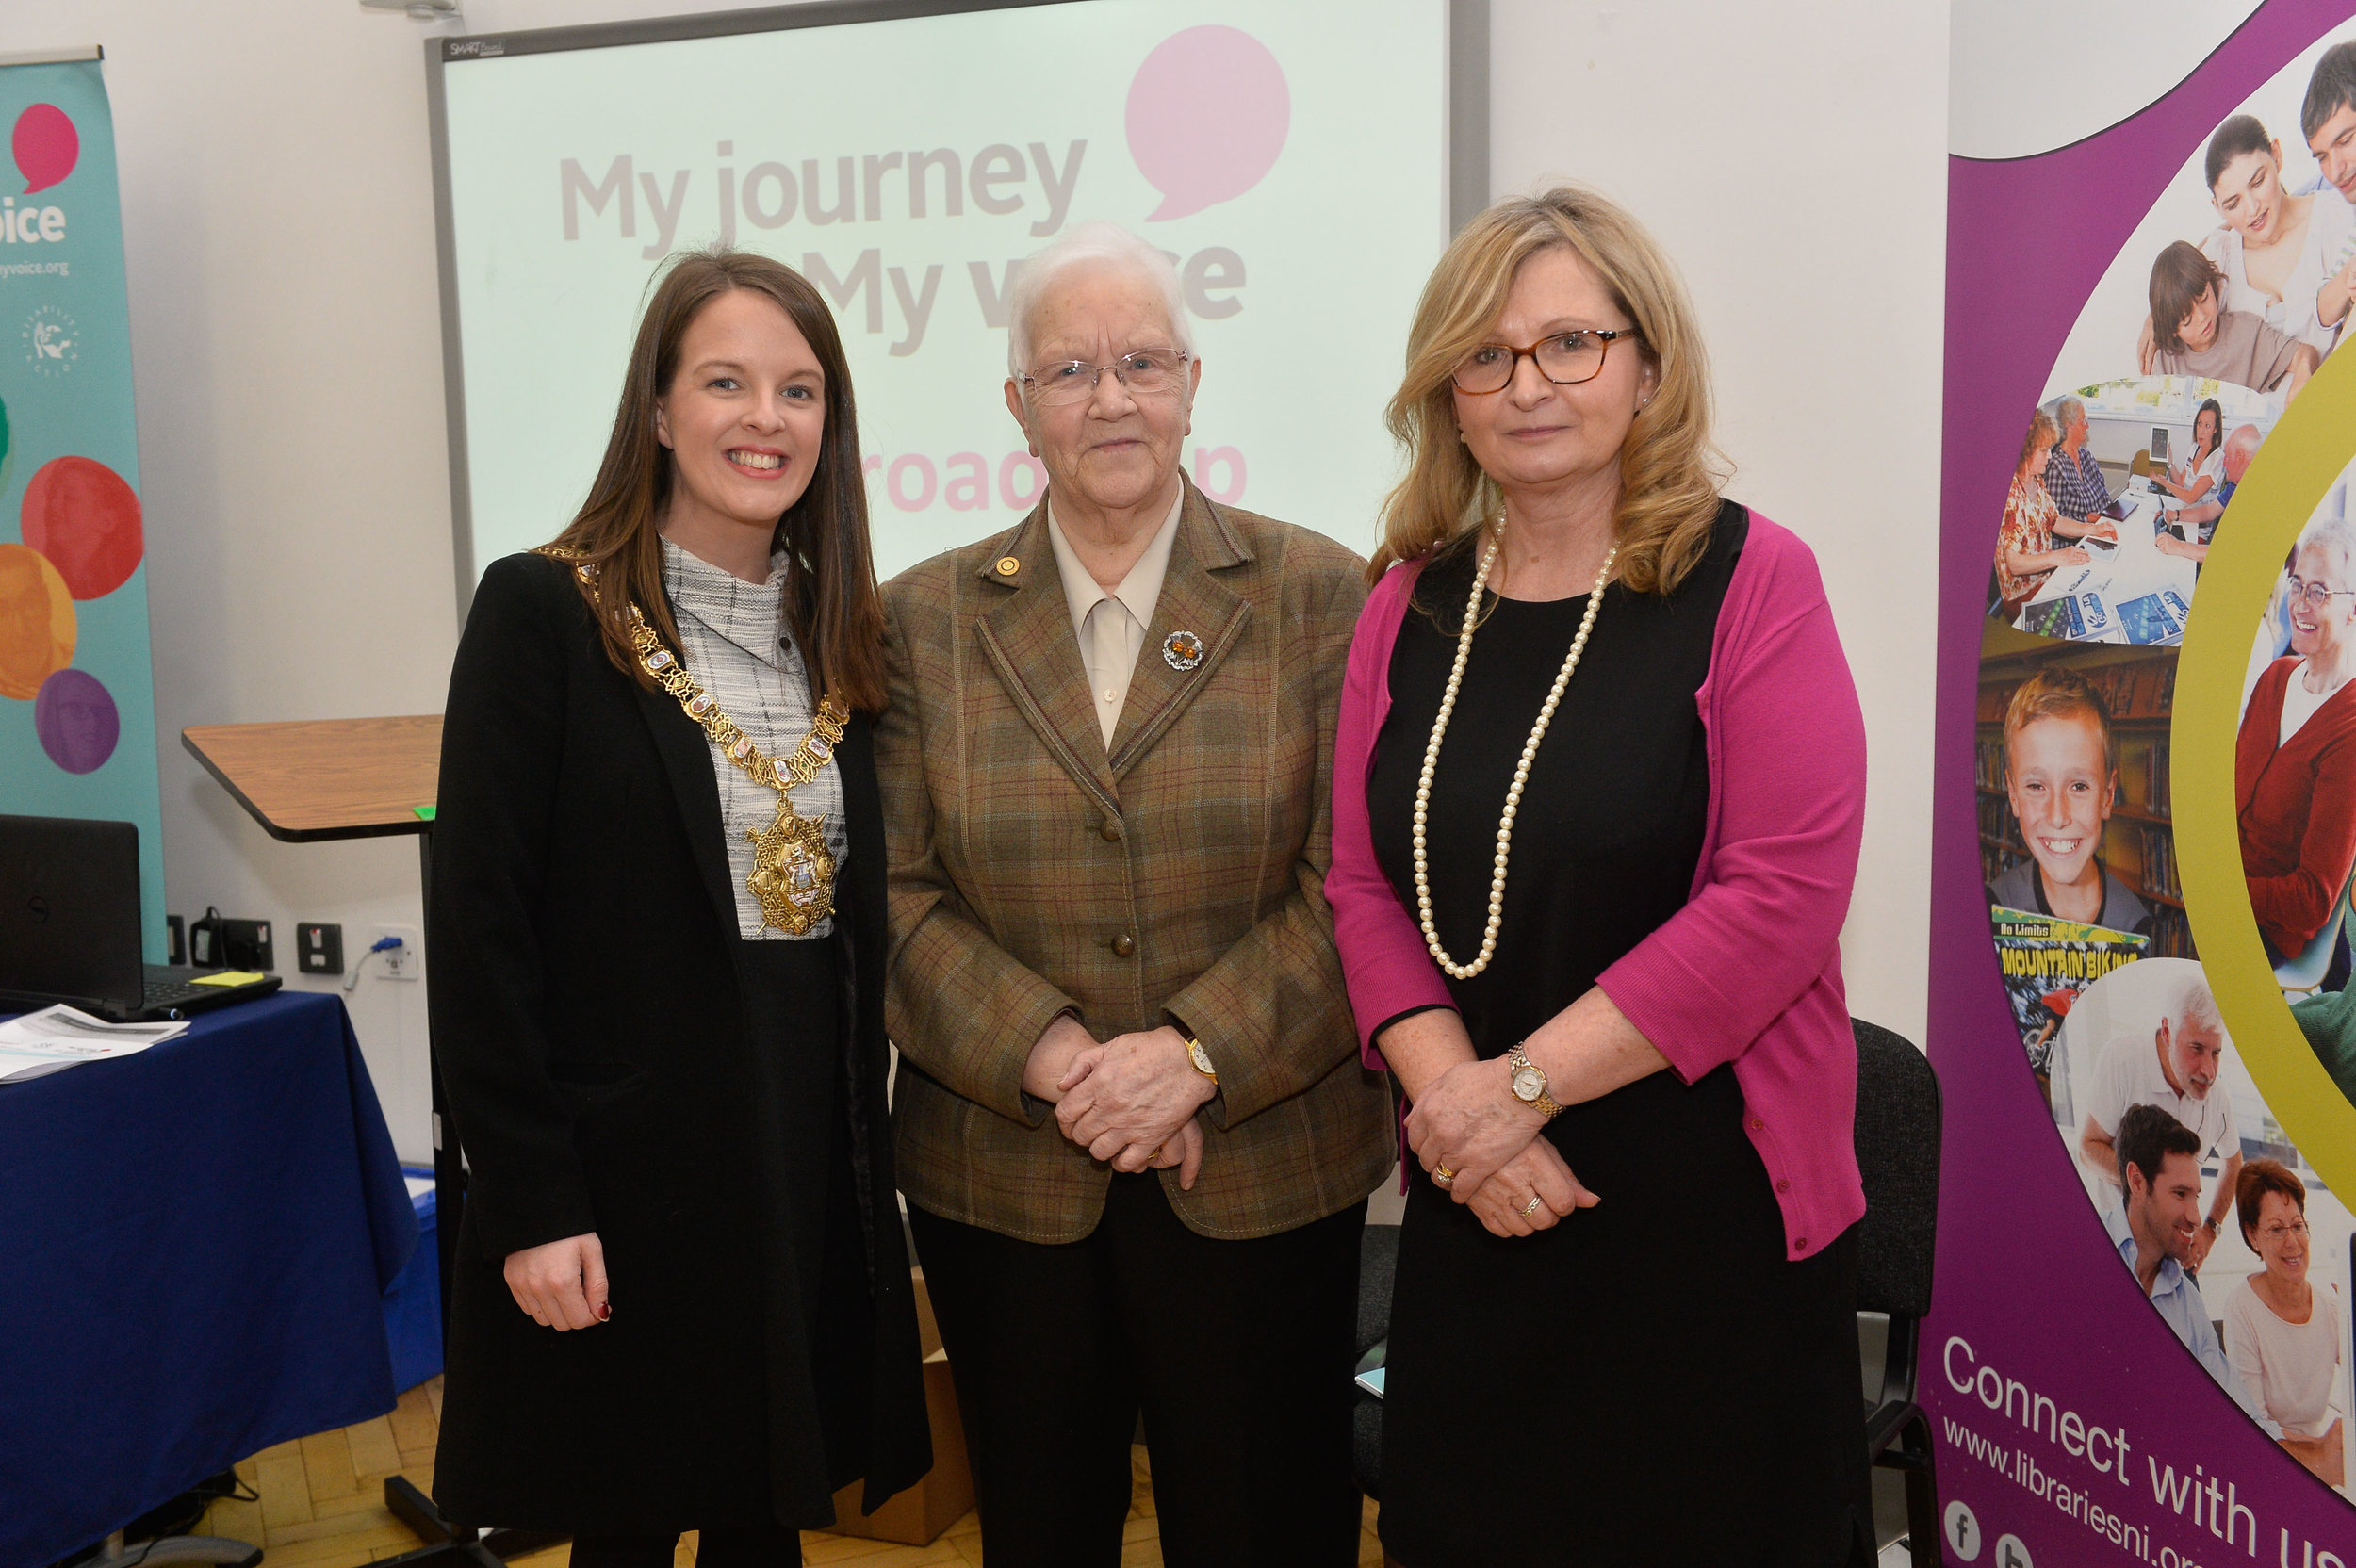 Lord Mayor of Belfast,  Councillor Nuala McAllister, and Baroness May Blood pictured with Alison McCullough, RCSLT.